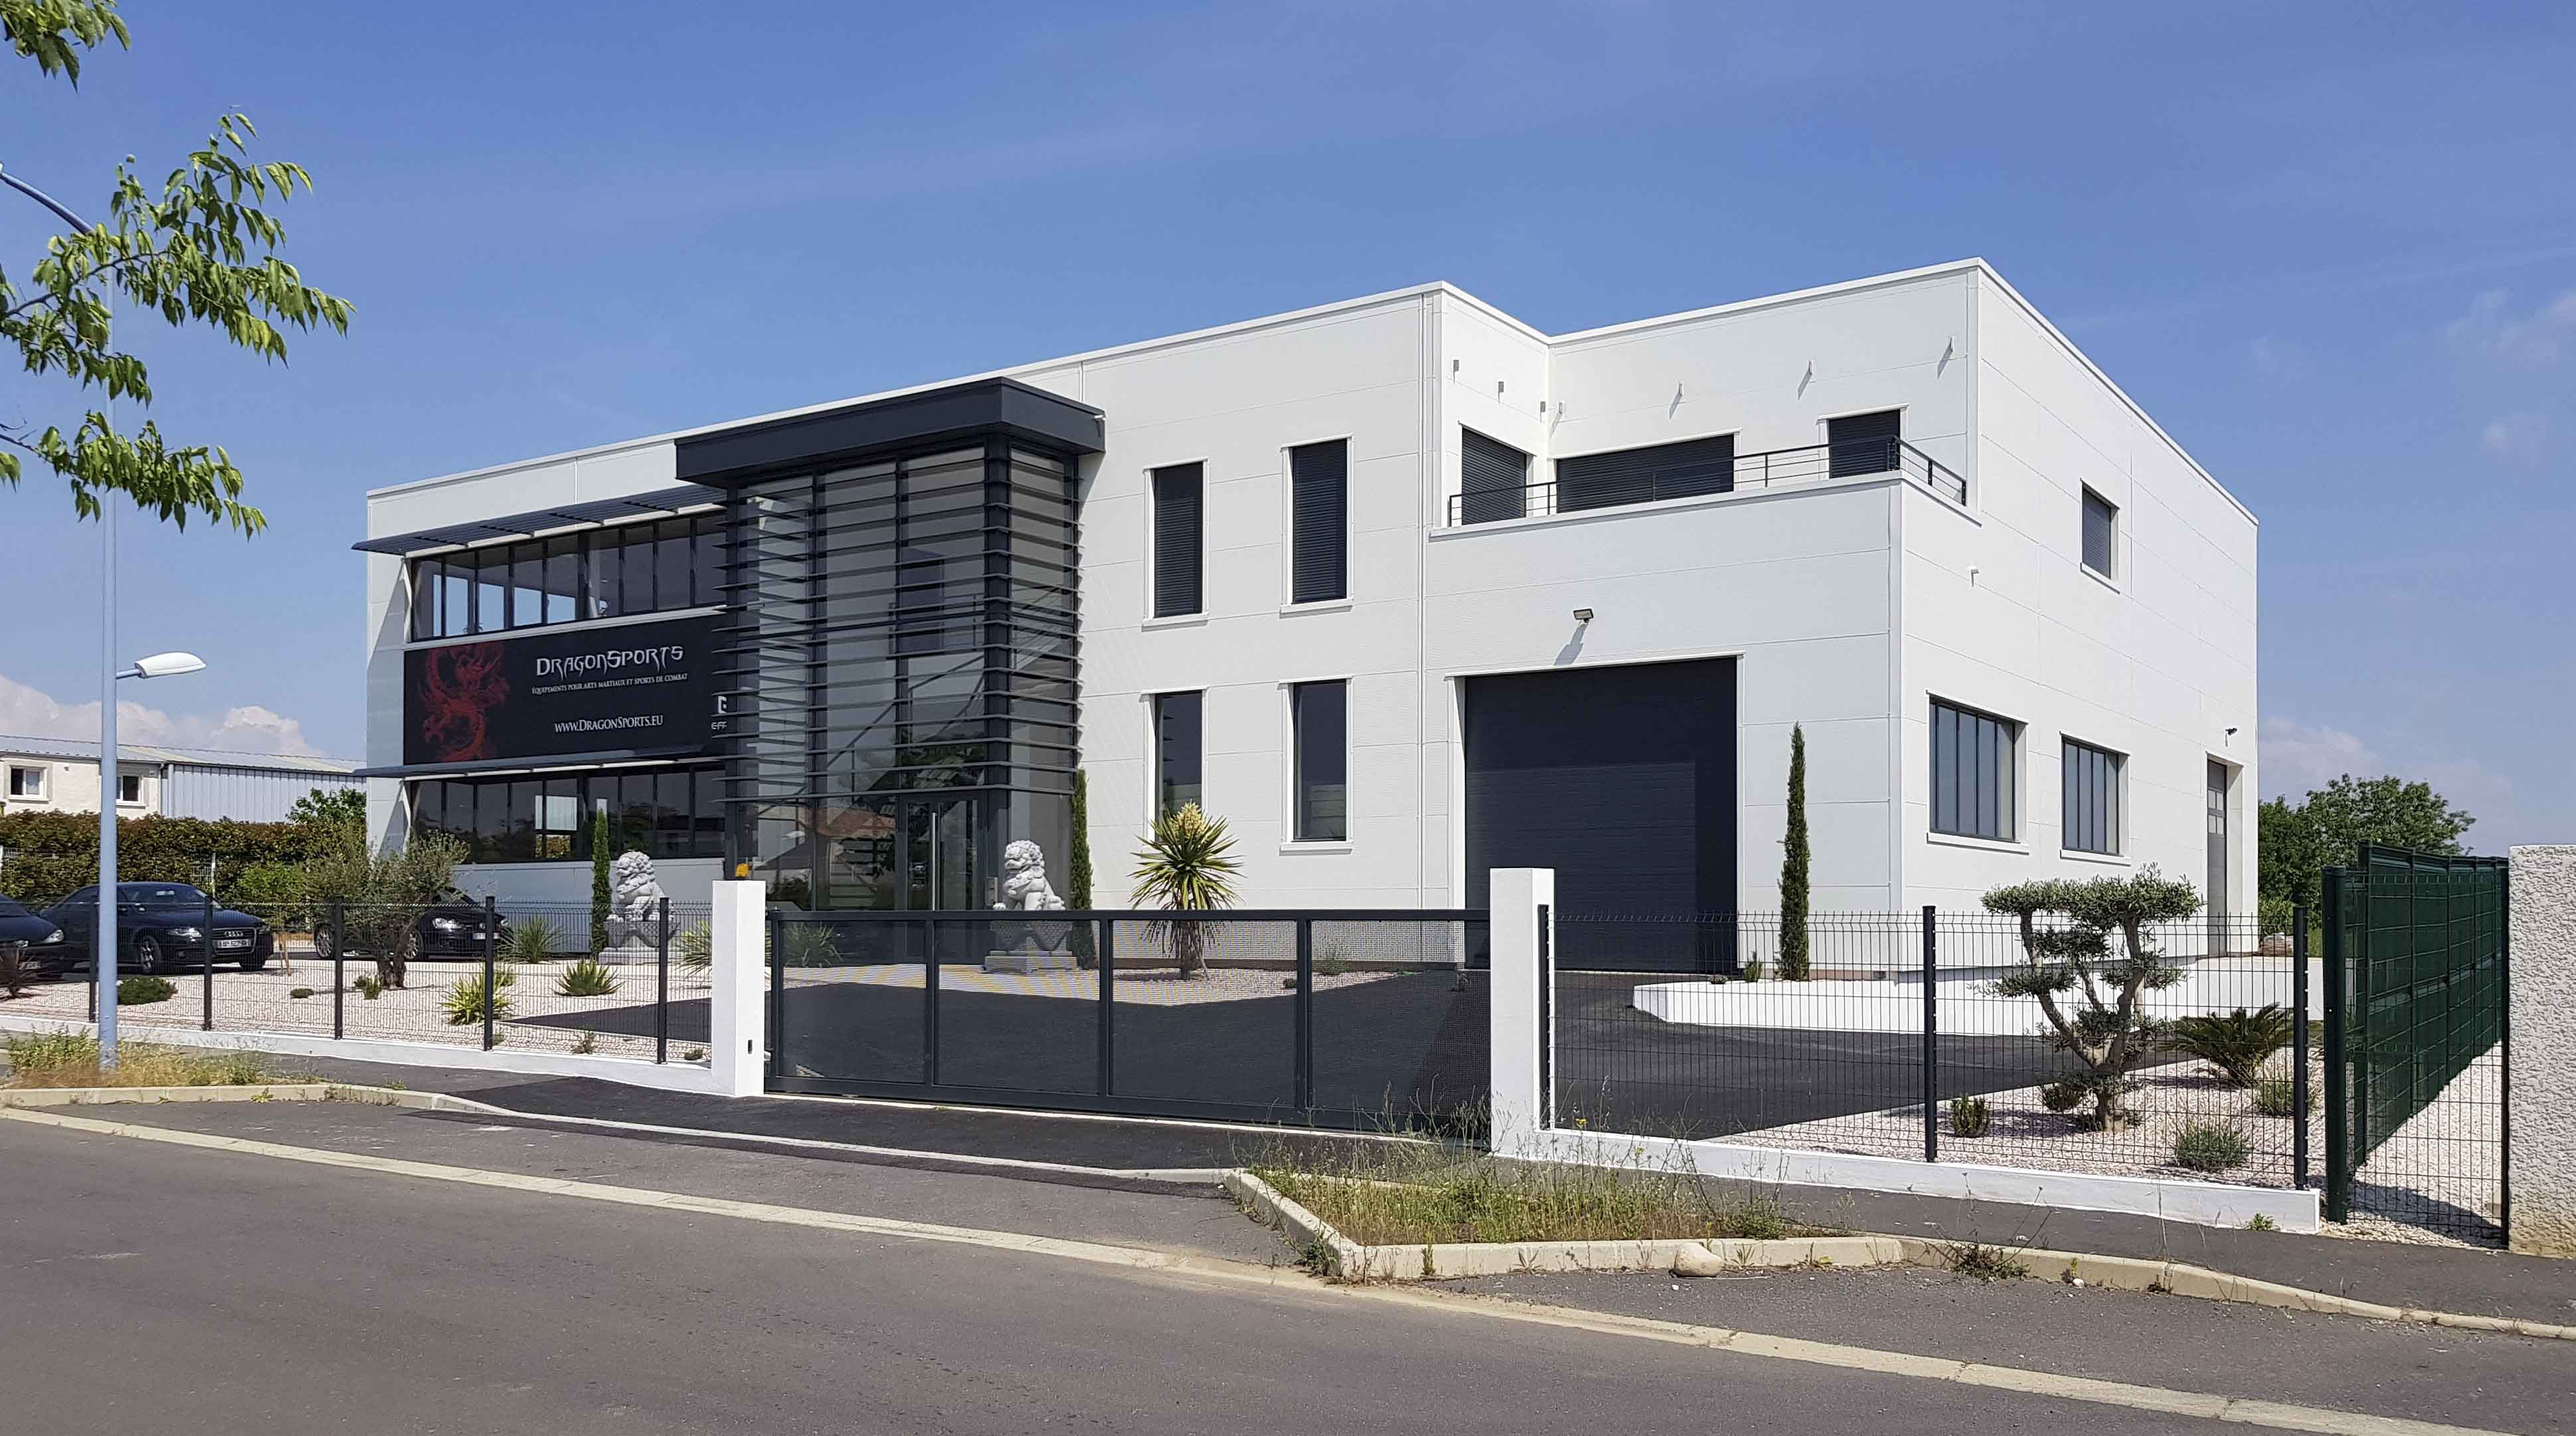 Immeuble tertiaire DragonSports BF Architecture 1